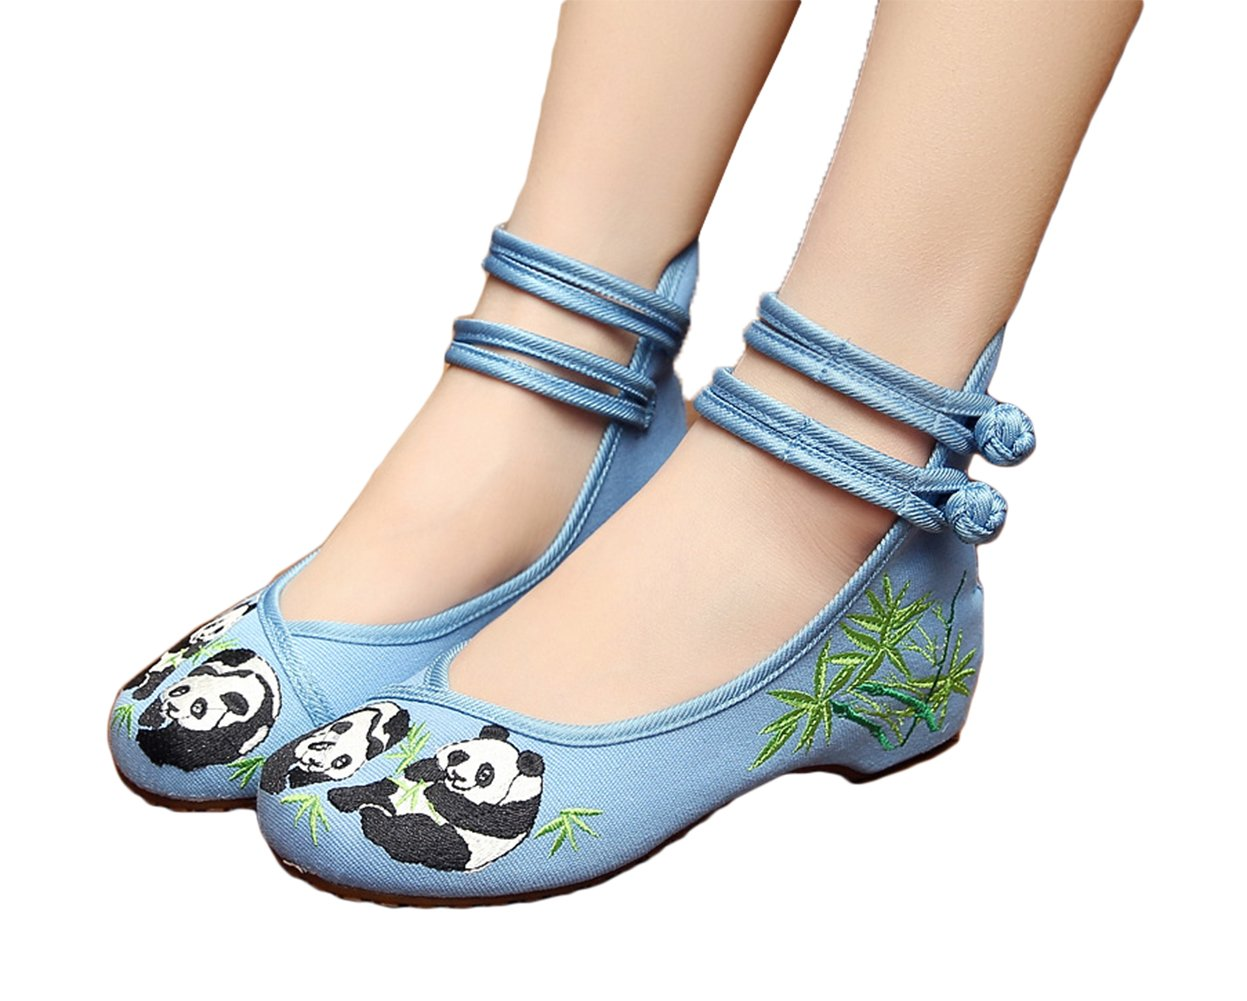 AvaCostume Chinese Style Panda Bamboo Embroidery Prom Dress Shoes, Blue, 37